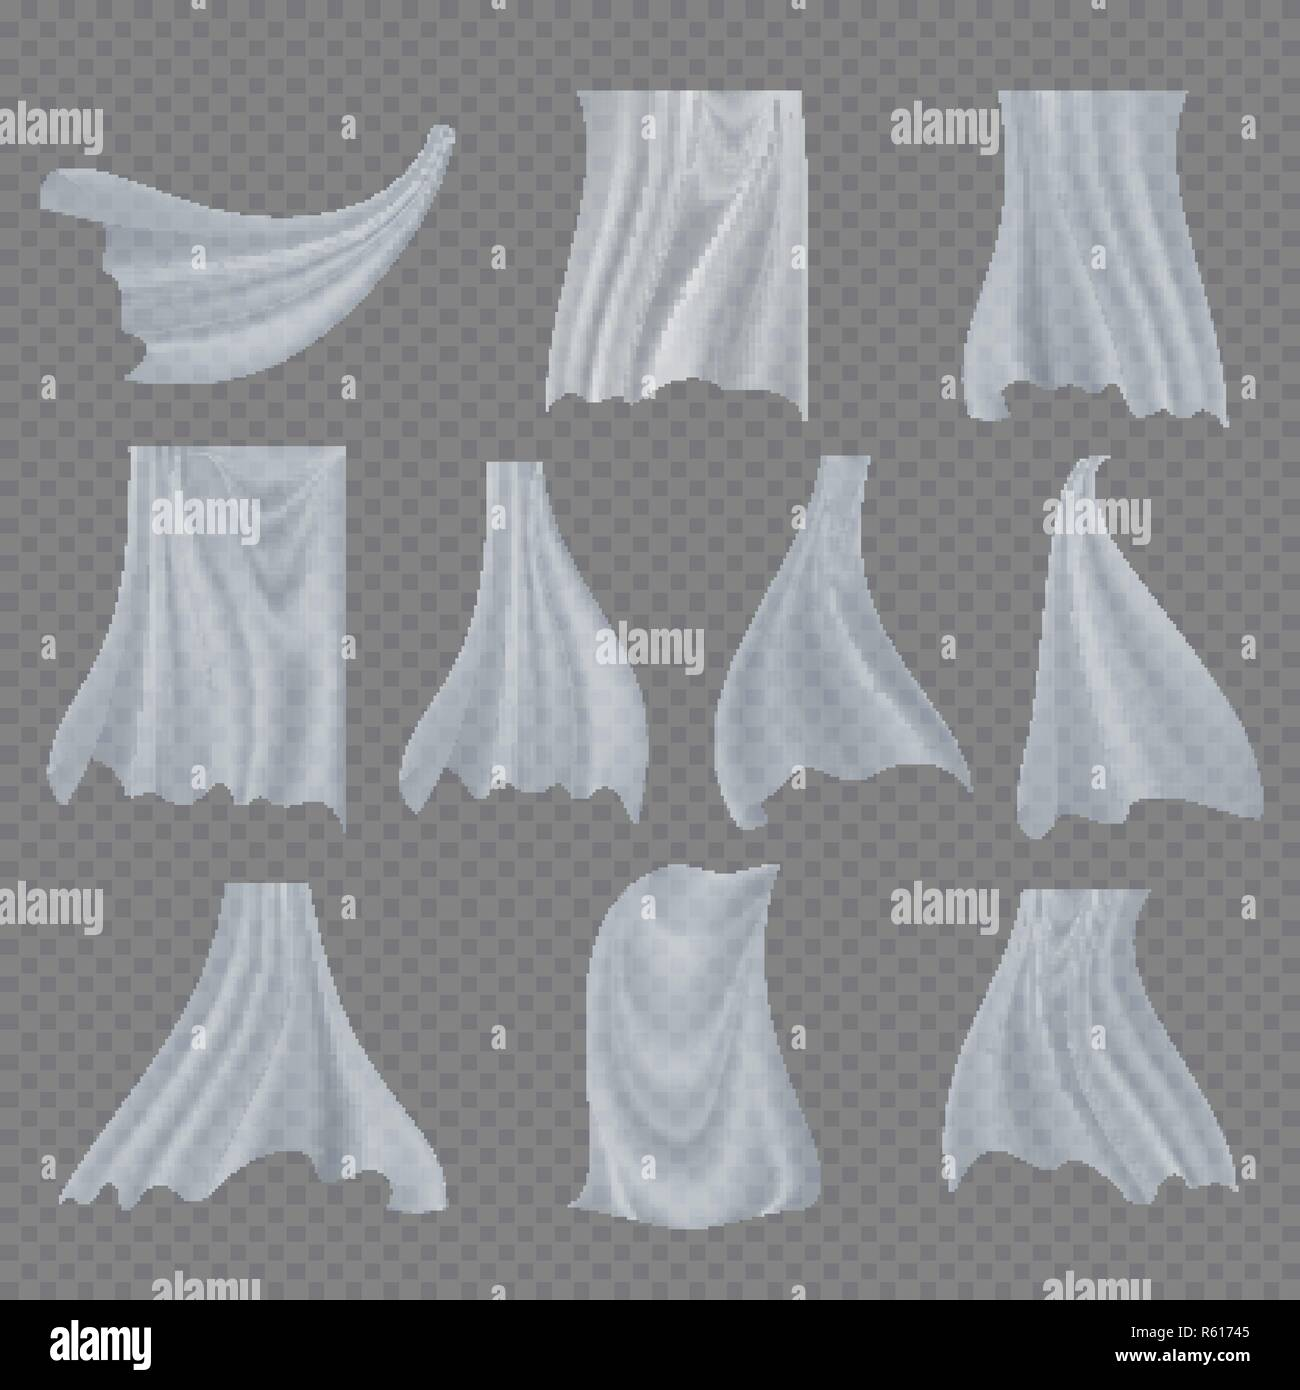 White Cloth Set Vector. Billowing Clear Curly Curtain Transparent White Cloth. Fluttering Curved Fabric Silk. Window Home Decoration. Realistic Clear Material Illustration - Stock Vector